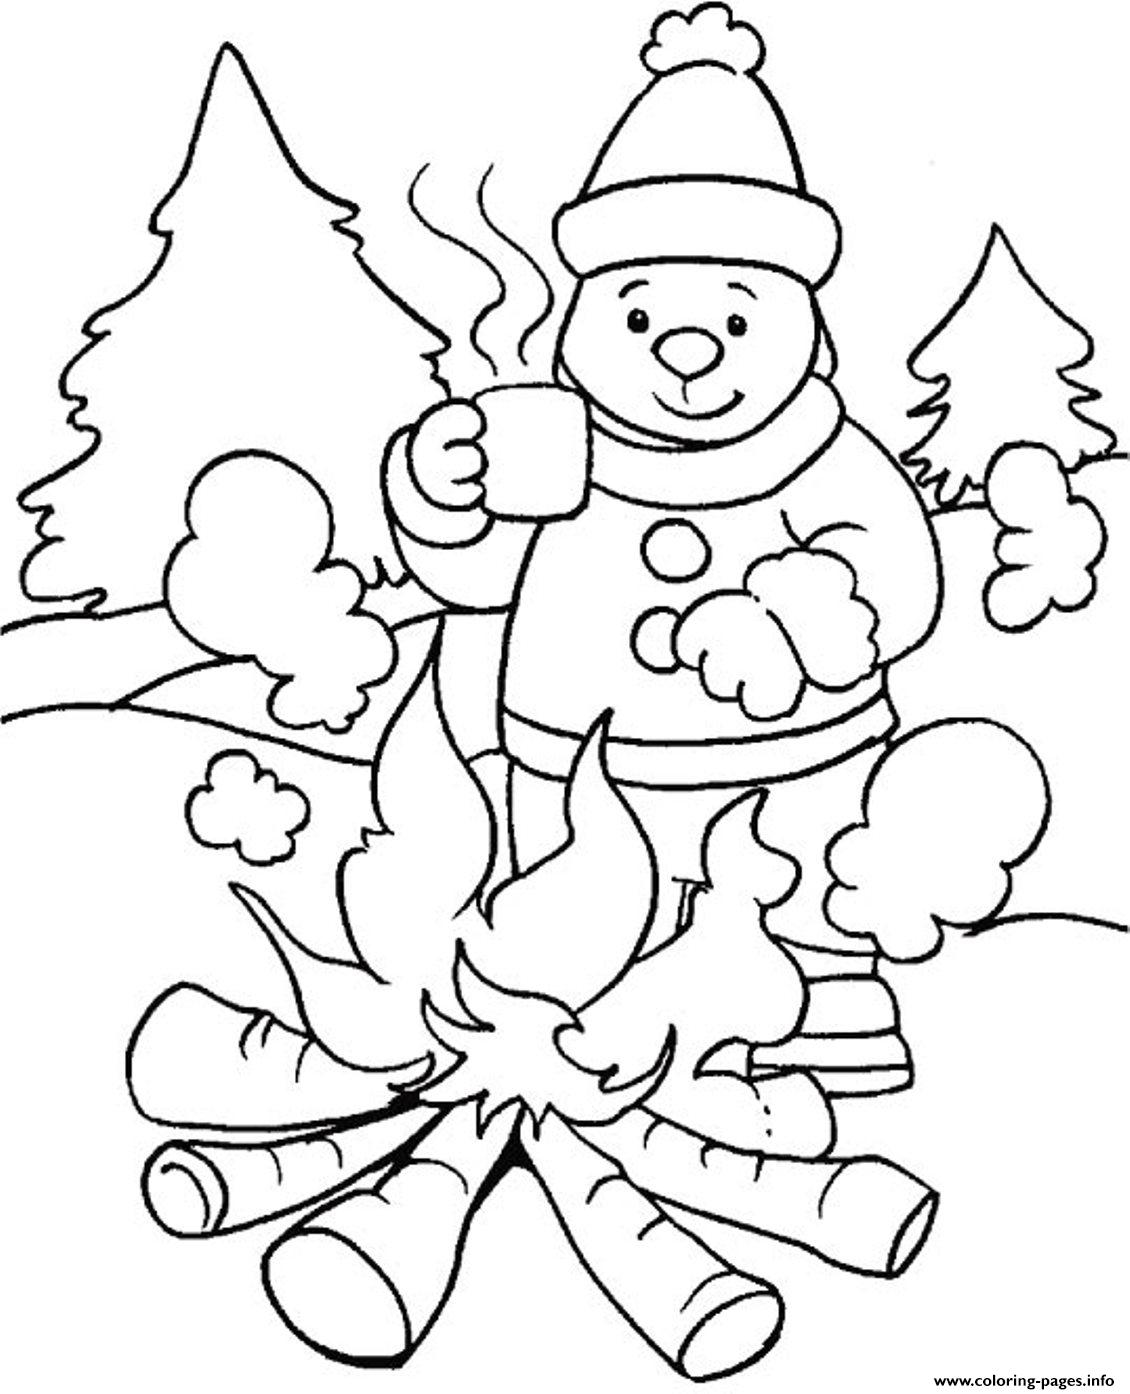 Winter Coloring Pages Fun Winter Images To Color Coloring